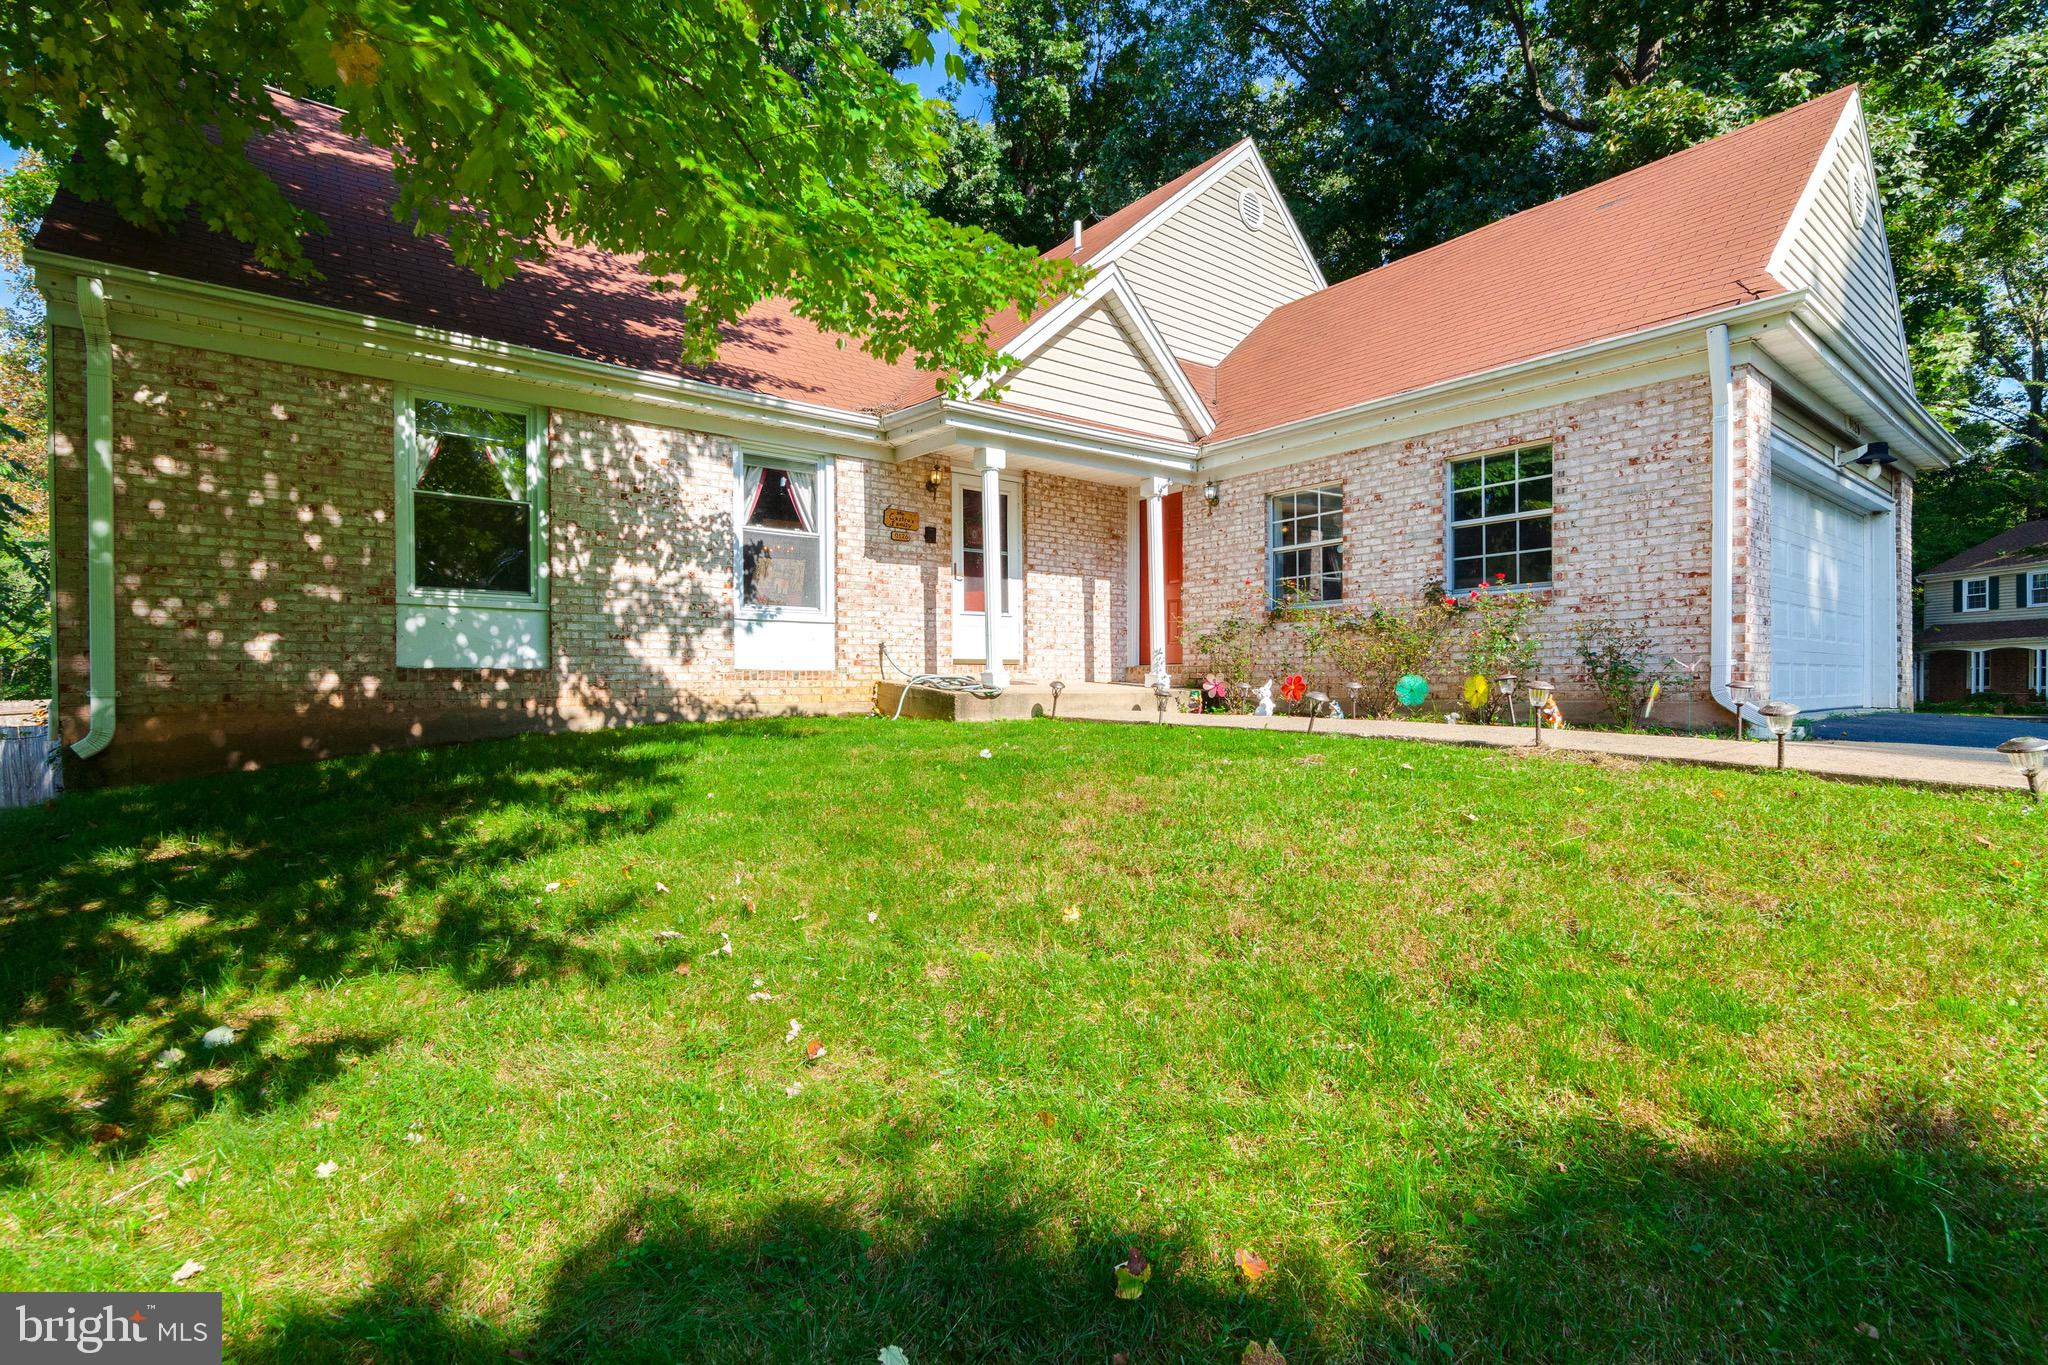 Great Location!!! Home Located on a Corner Lot with a Lake View. WSF School Pyramid! Eat-In Kitchen w/Green House Window, Large Family Room w/Wood Burning Fireplace. Ceramic Tile in Foyer and Kitchen. Wood floor on Main and Lower Lvl, Large Dining Room. Fully Fenced Rear Yard. 2 Car Garage. This Home is Tenant Occupied. Lease ends August 31, 2019. However, there may be flexibility on lease end date.